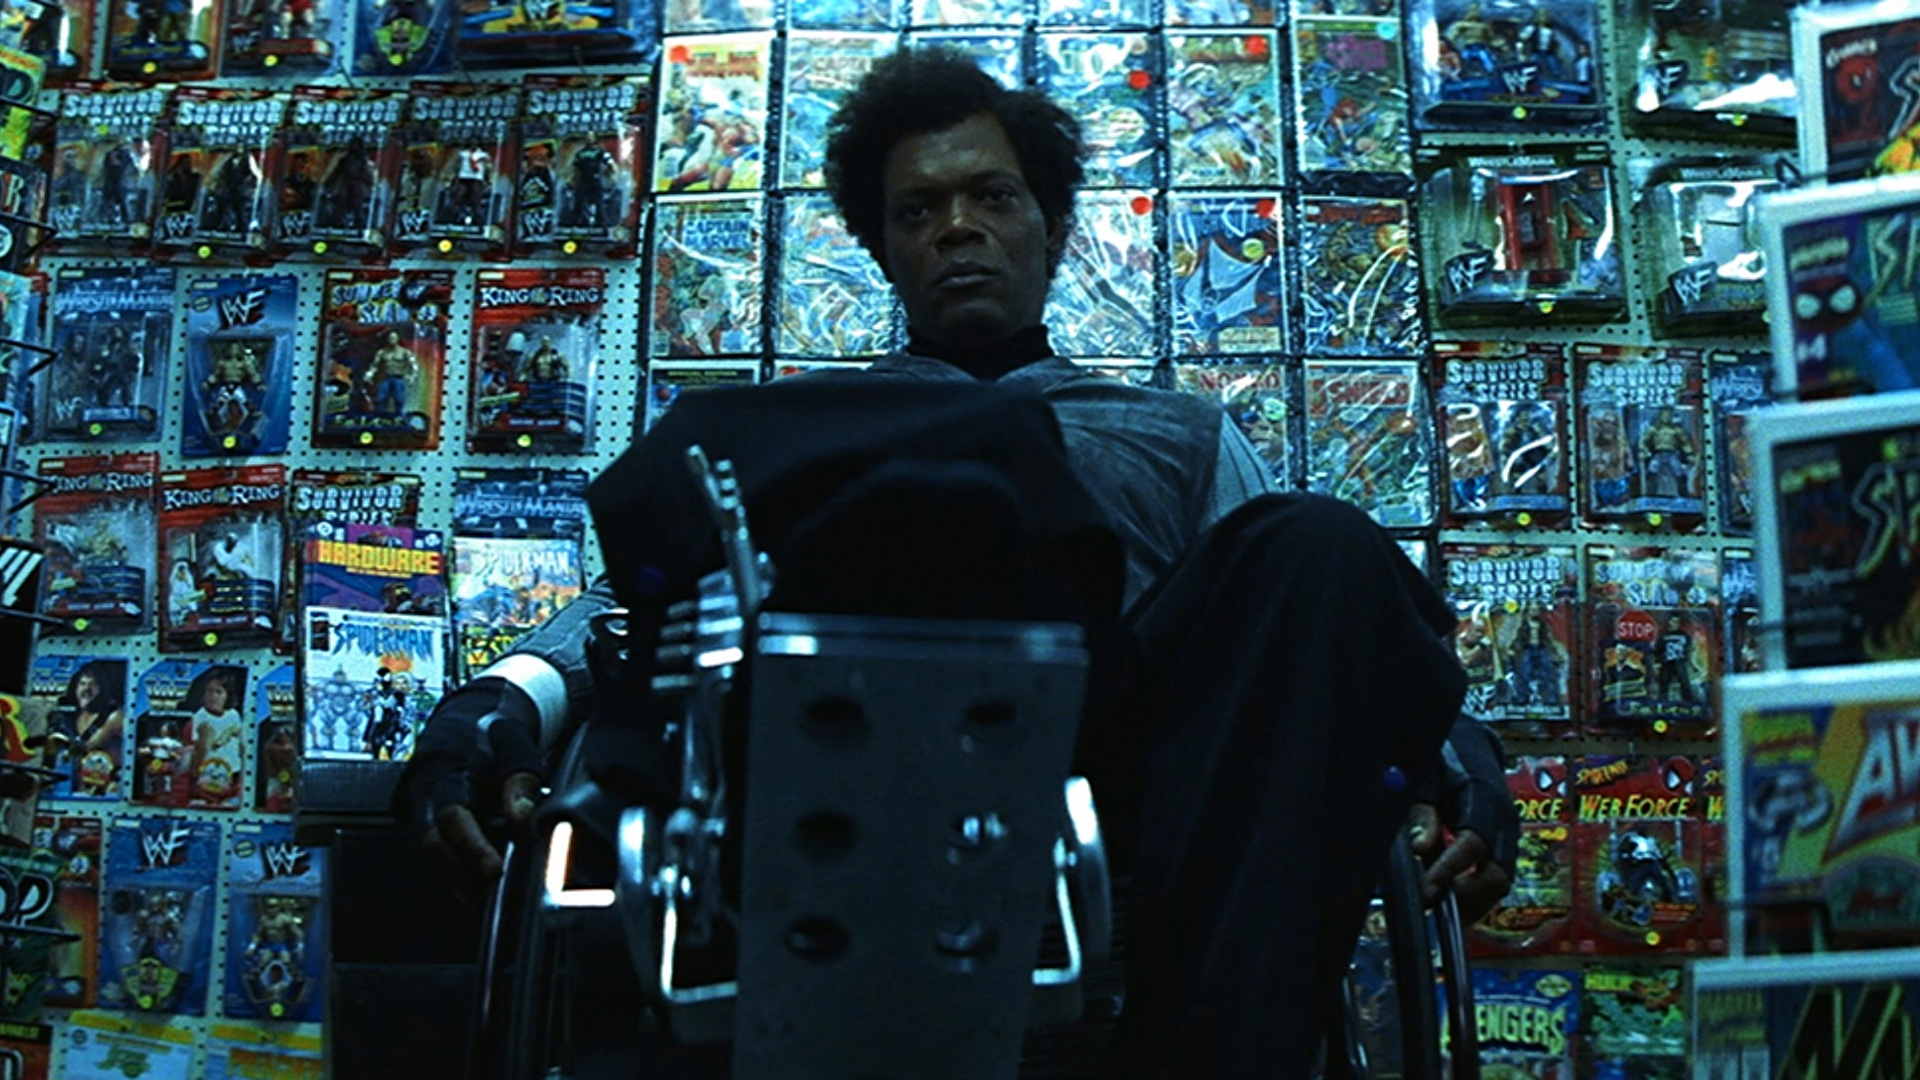 the-first-footage-from-m-night-shyamalans-glass-just-screened-and-it-was-amazing-social.jpg